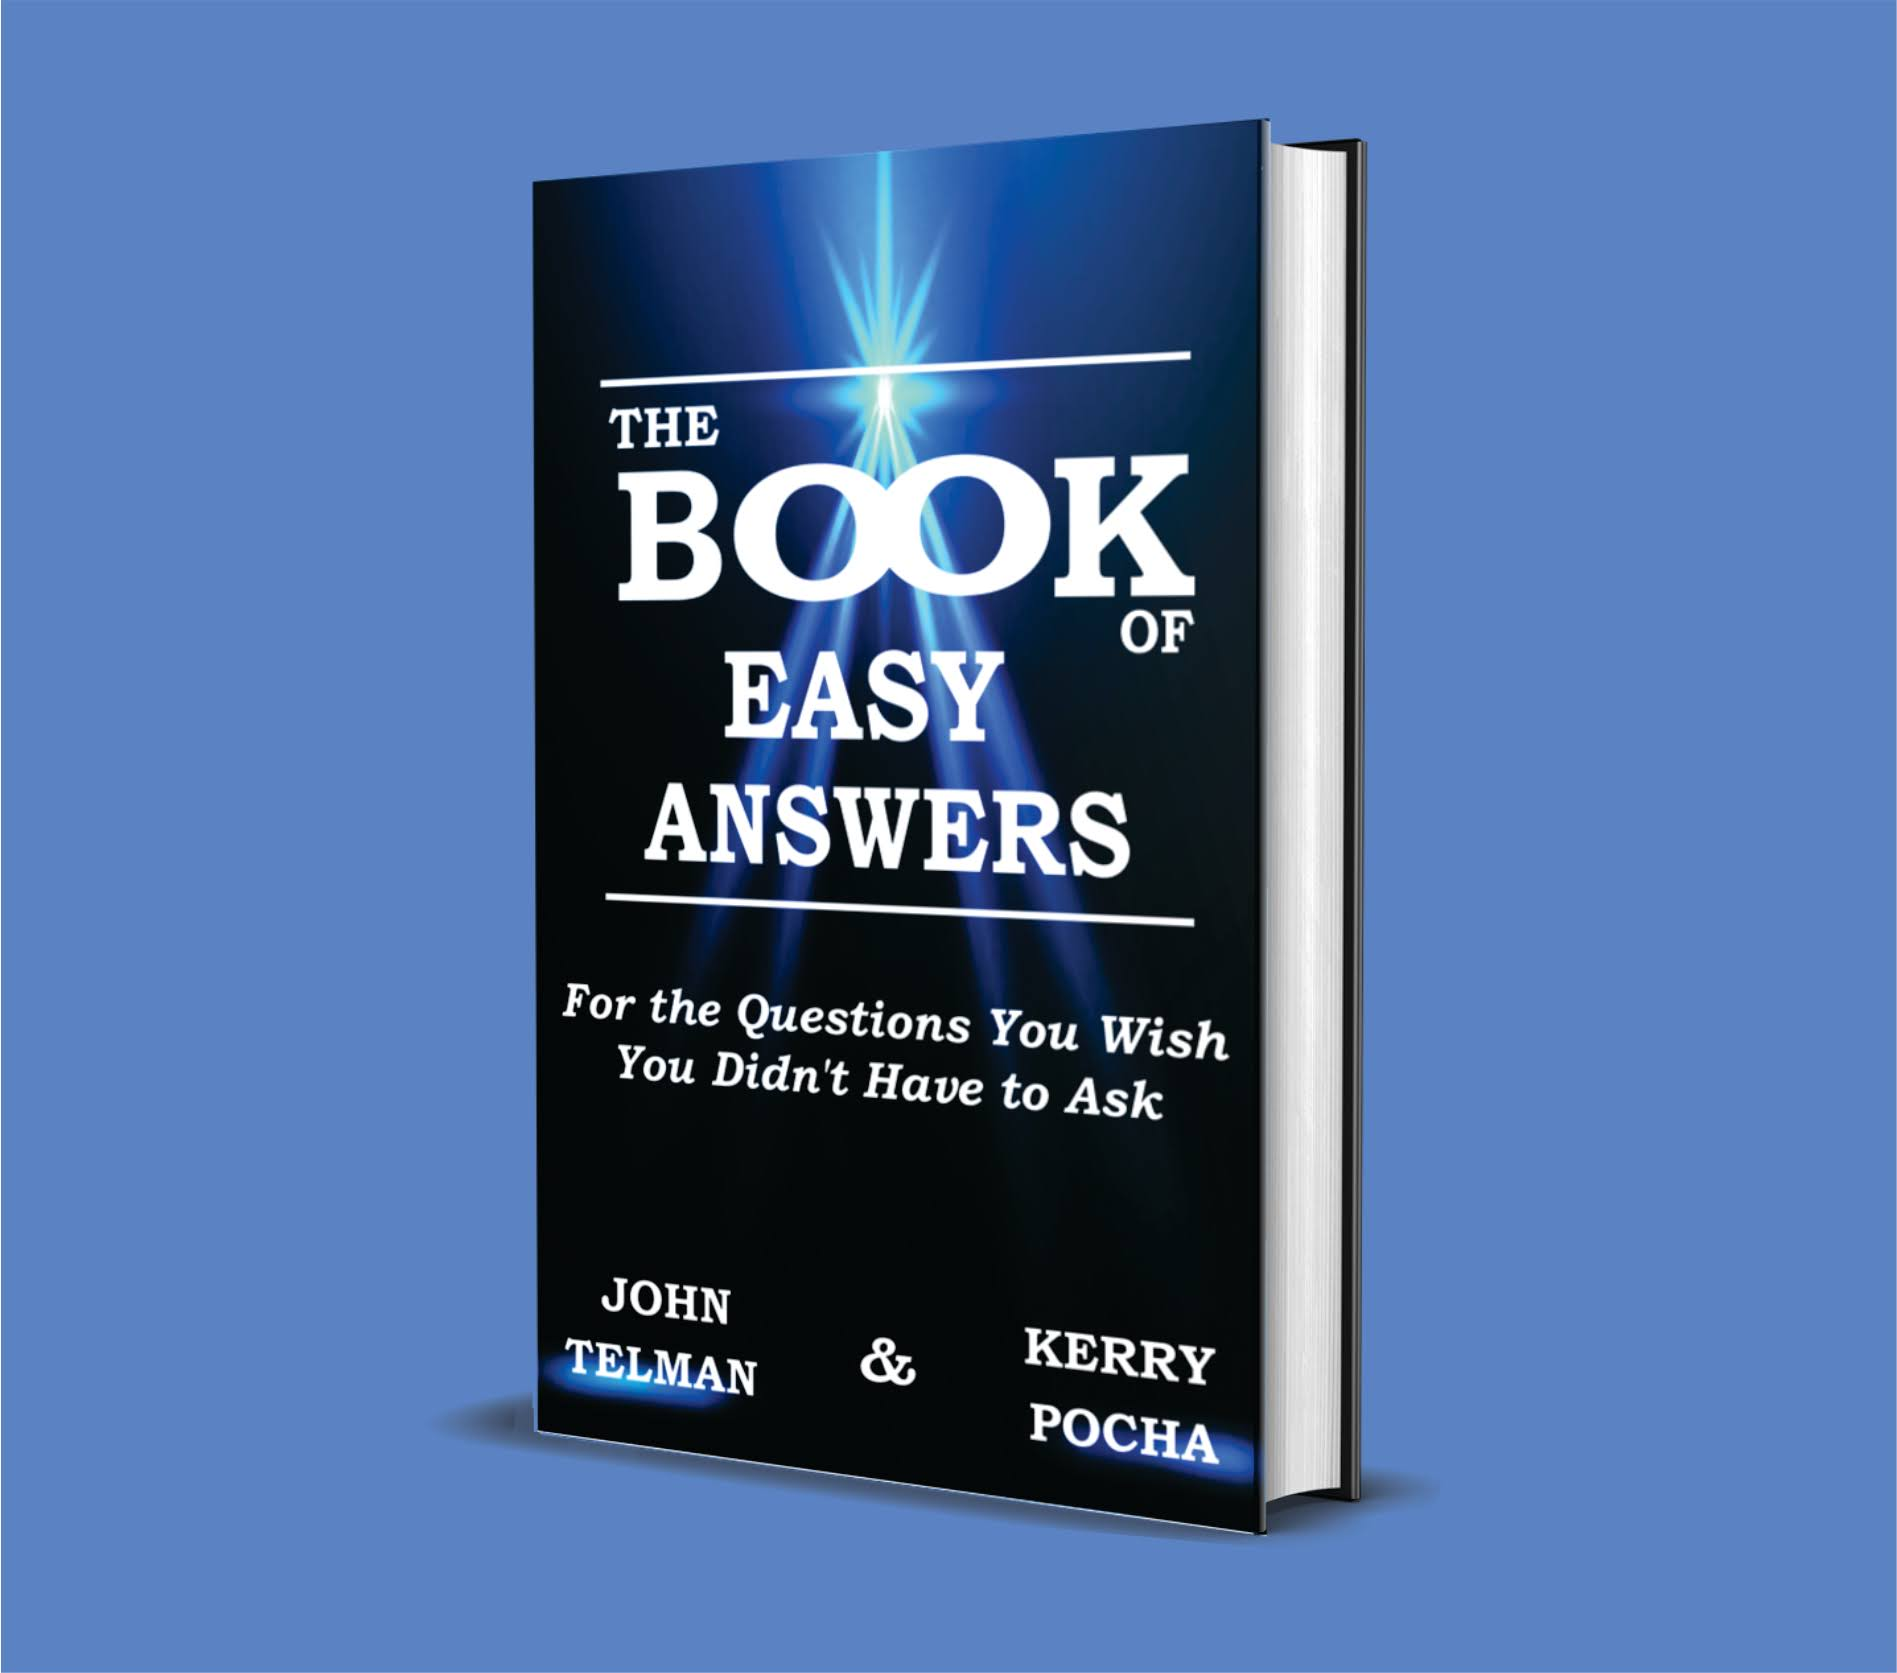 The Book of Easy Answers: For the Questions You Wish You Didn't Have to Ask